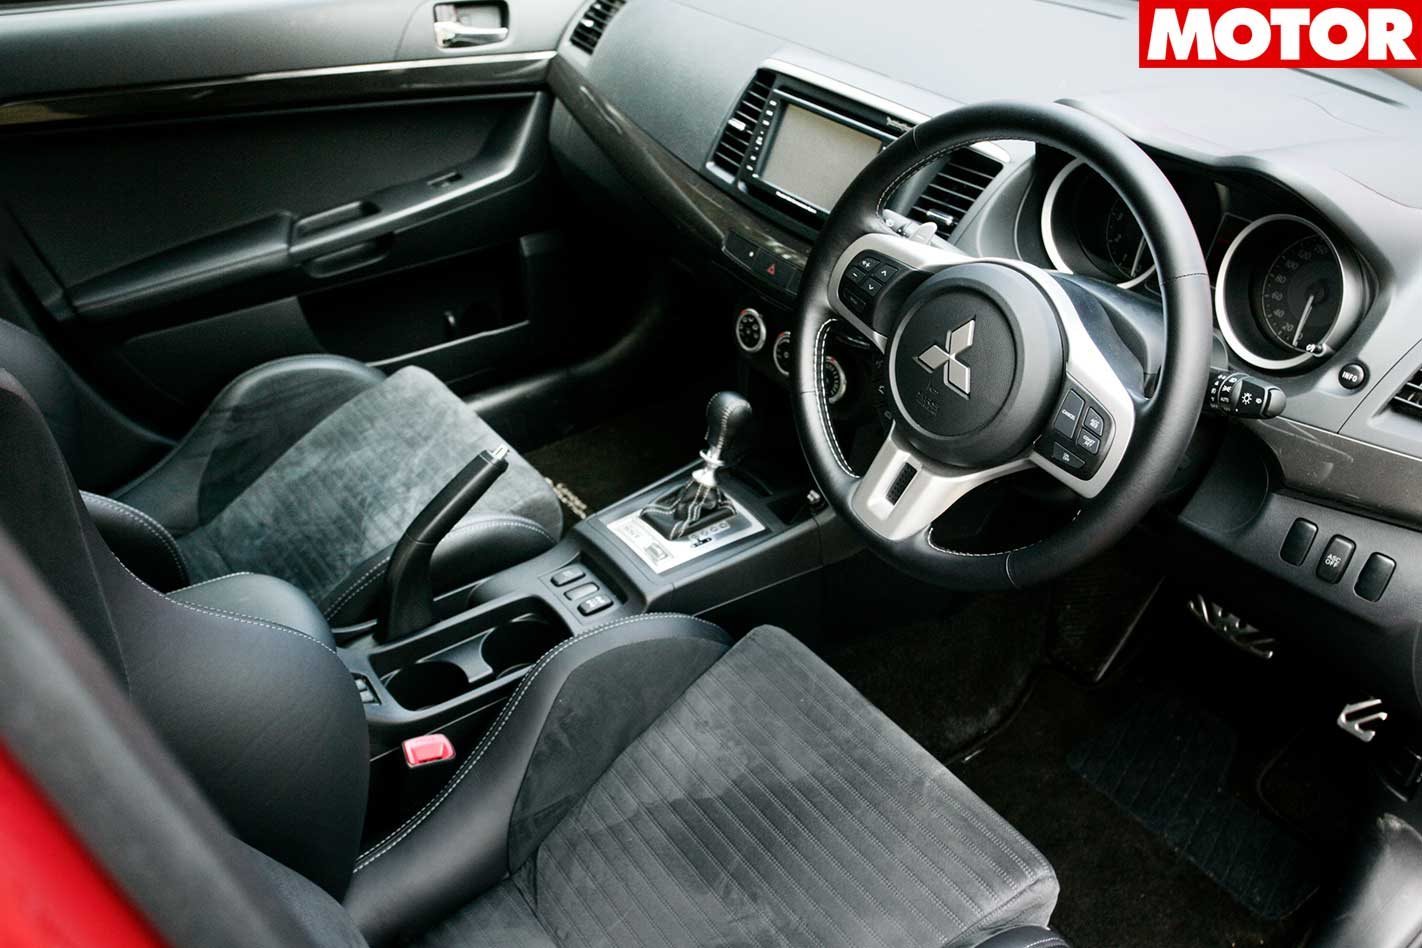 2008 Mitsubishi Lancer Evolution X First Drive Review Classic Motor Eclipse Gt Interior Magnesium Eh Yep The Evo Is Vastly Improved For Materials And Finish On Inside Sure Its No Audi But It Feels A Million Bucks Richer Than Old